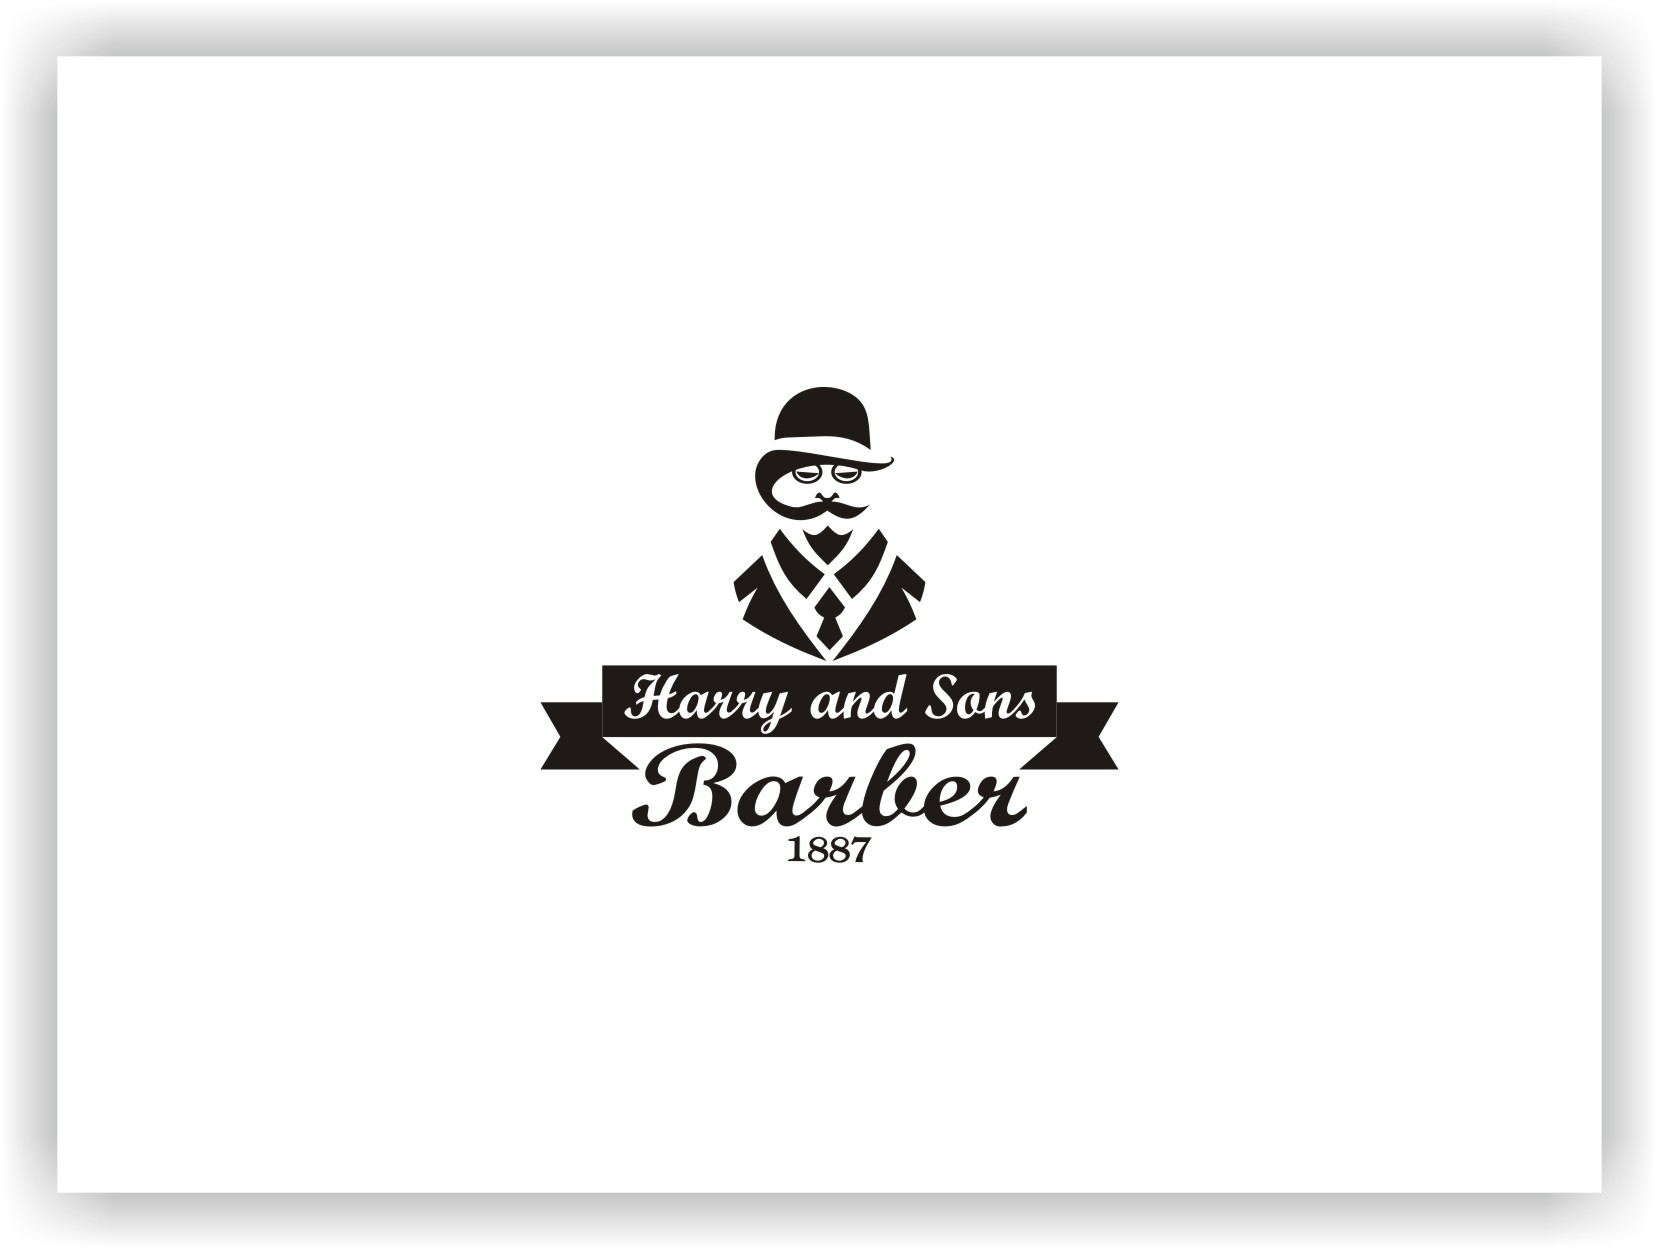 Logo Design by Joaquin Sampaio - Entry No. 29 in the Logo Design Contest Captivating Logo Design for Harry and Sons Barber.